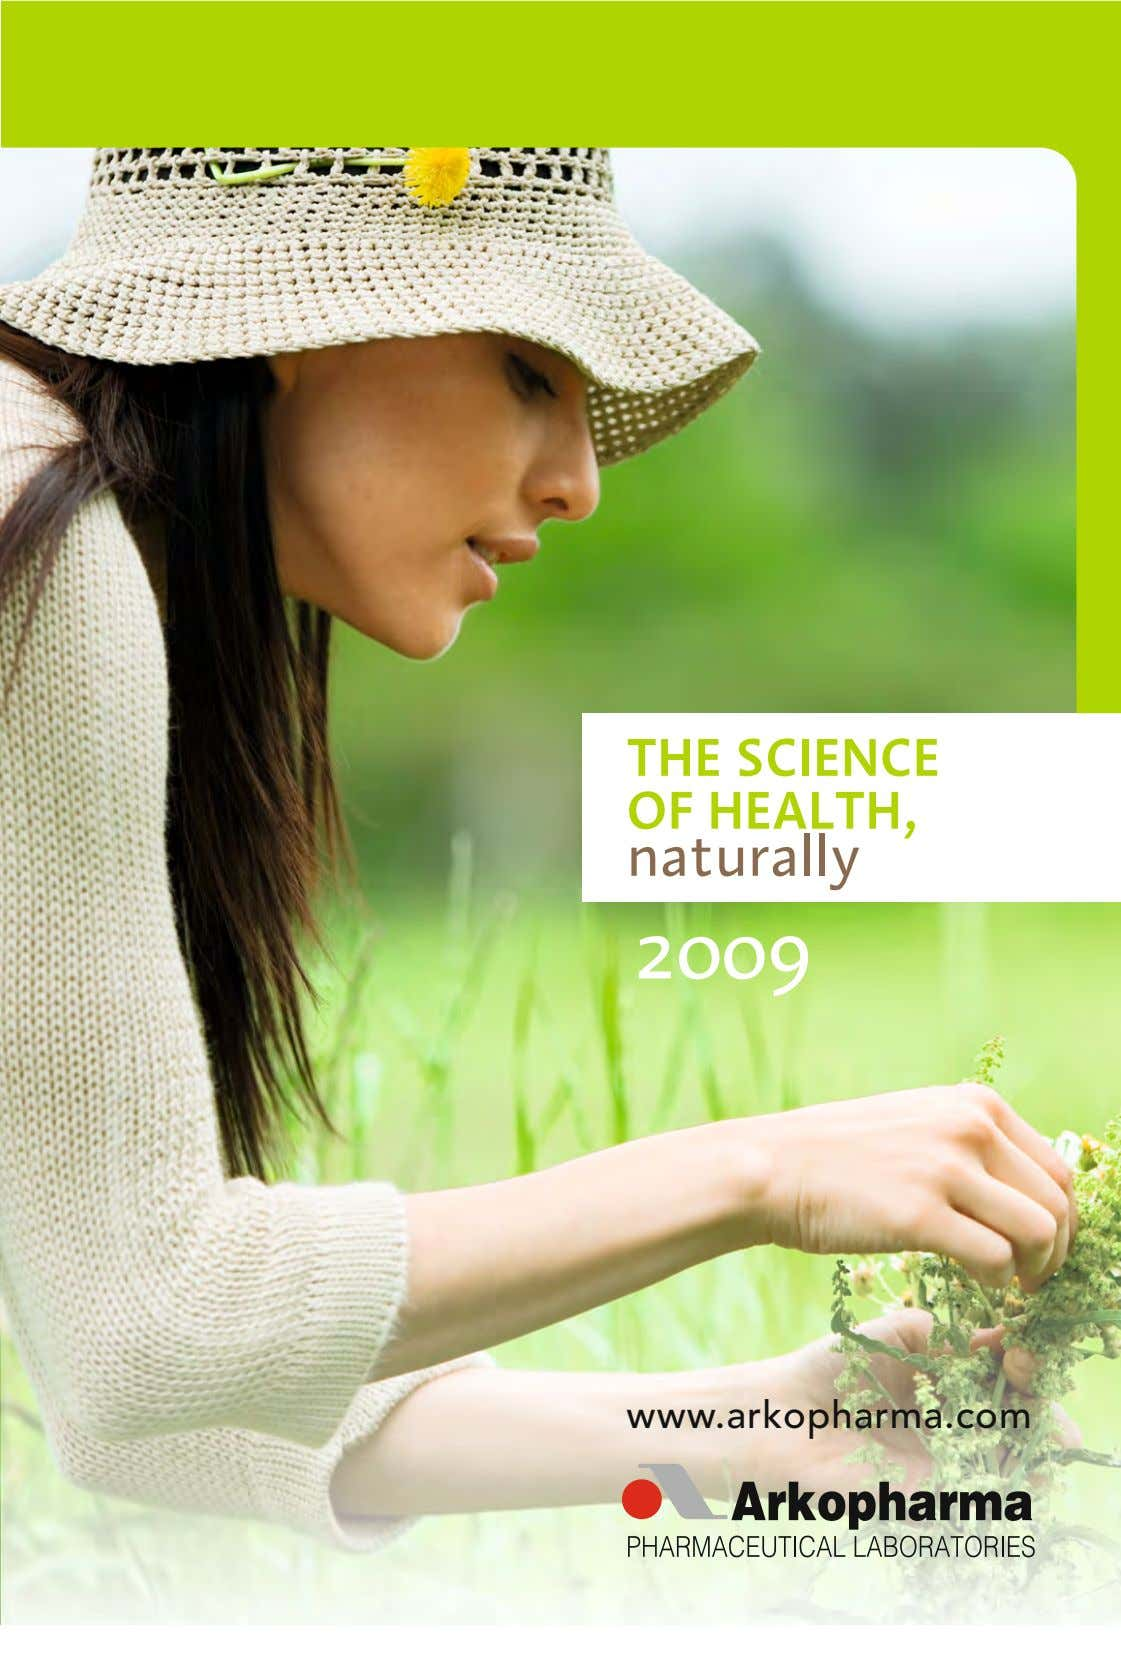 THE SCIENCE OF HEALTH, naturally 2009 www.arkopharma.com